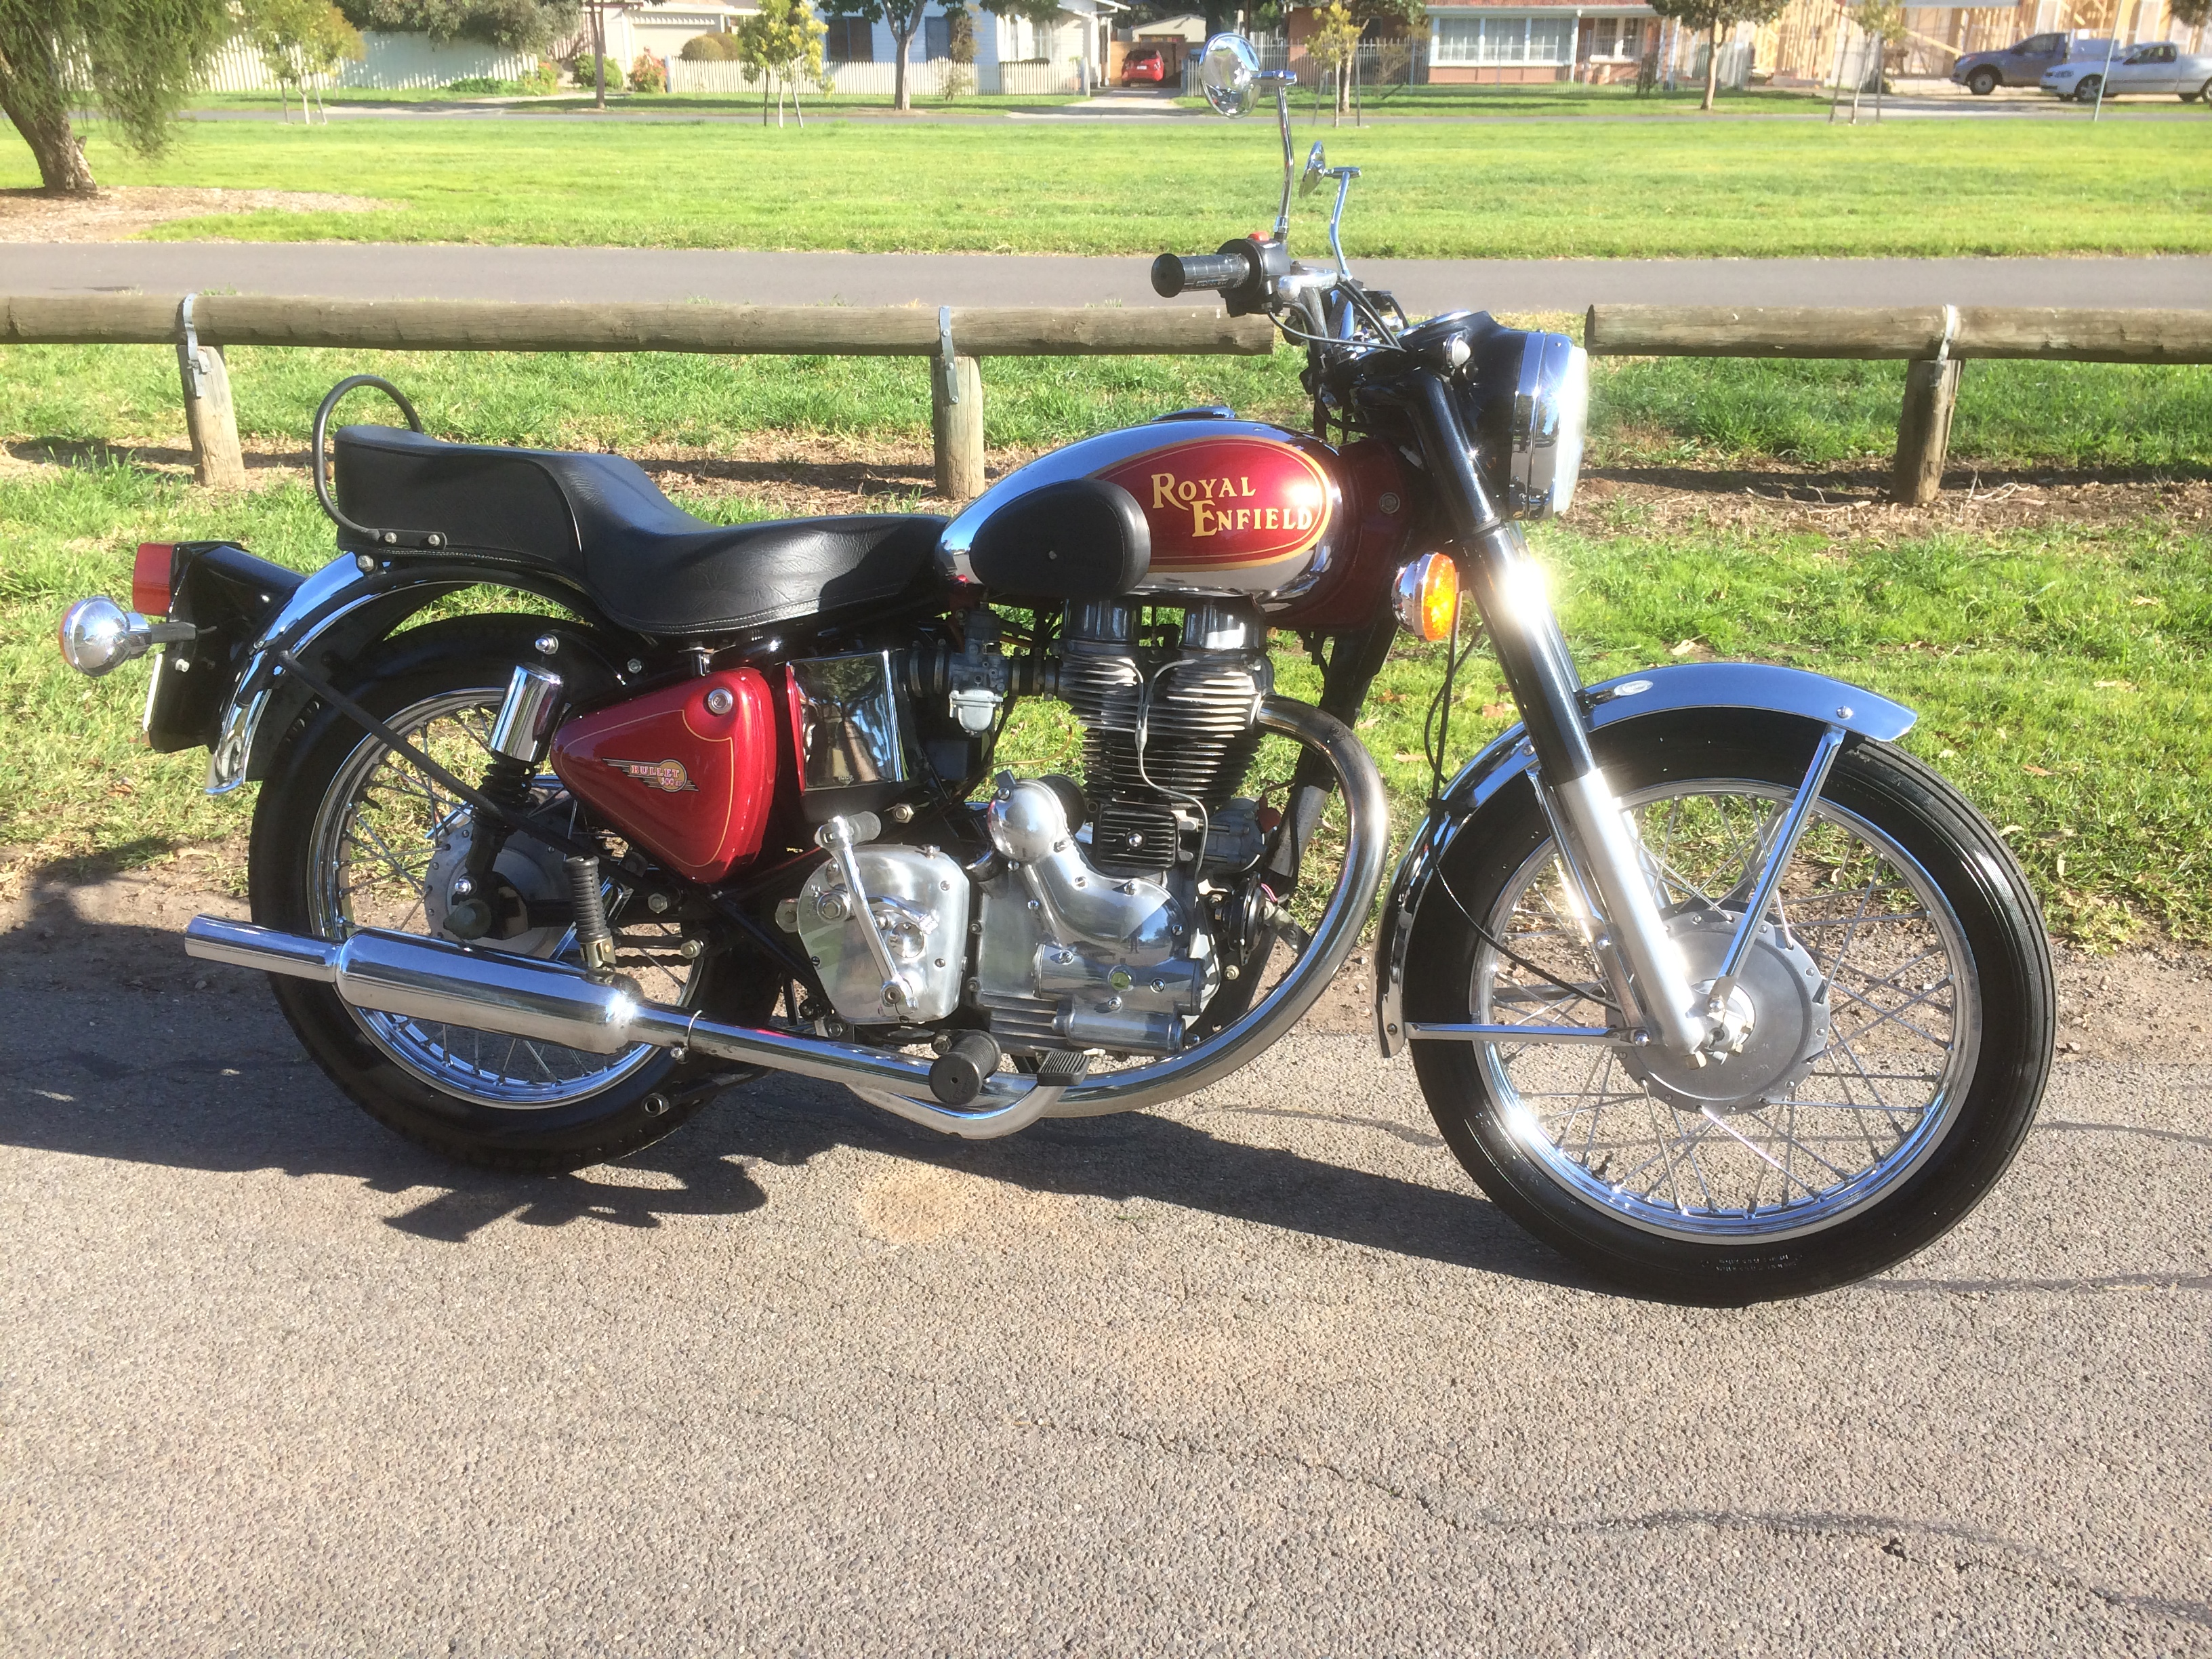 Royal Enfield Diesel 1997 images #122867